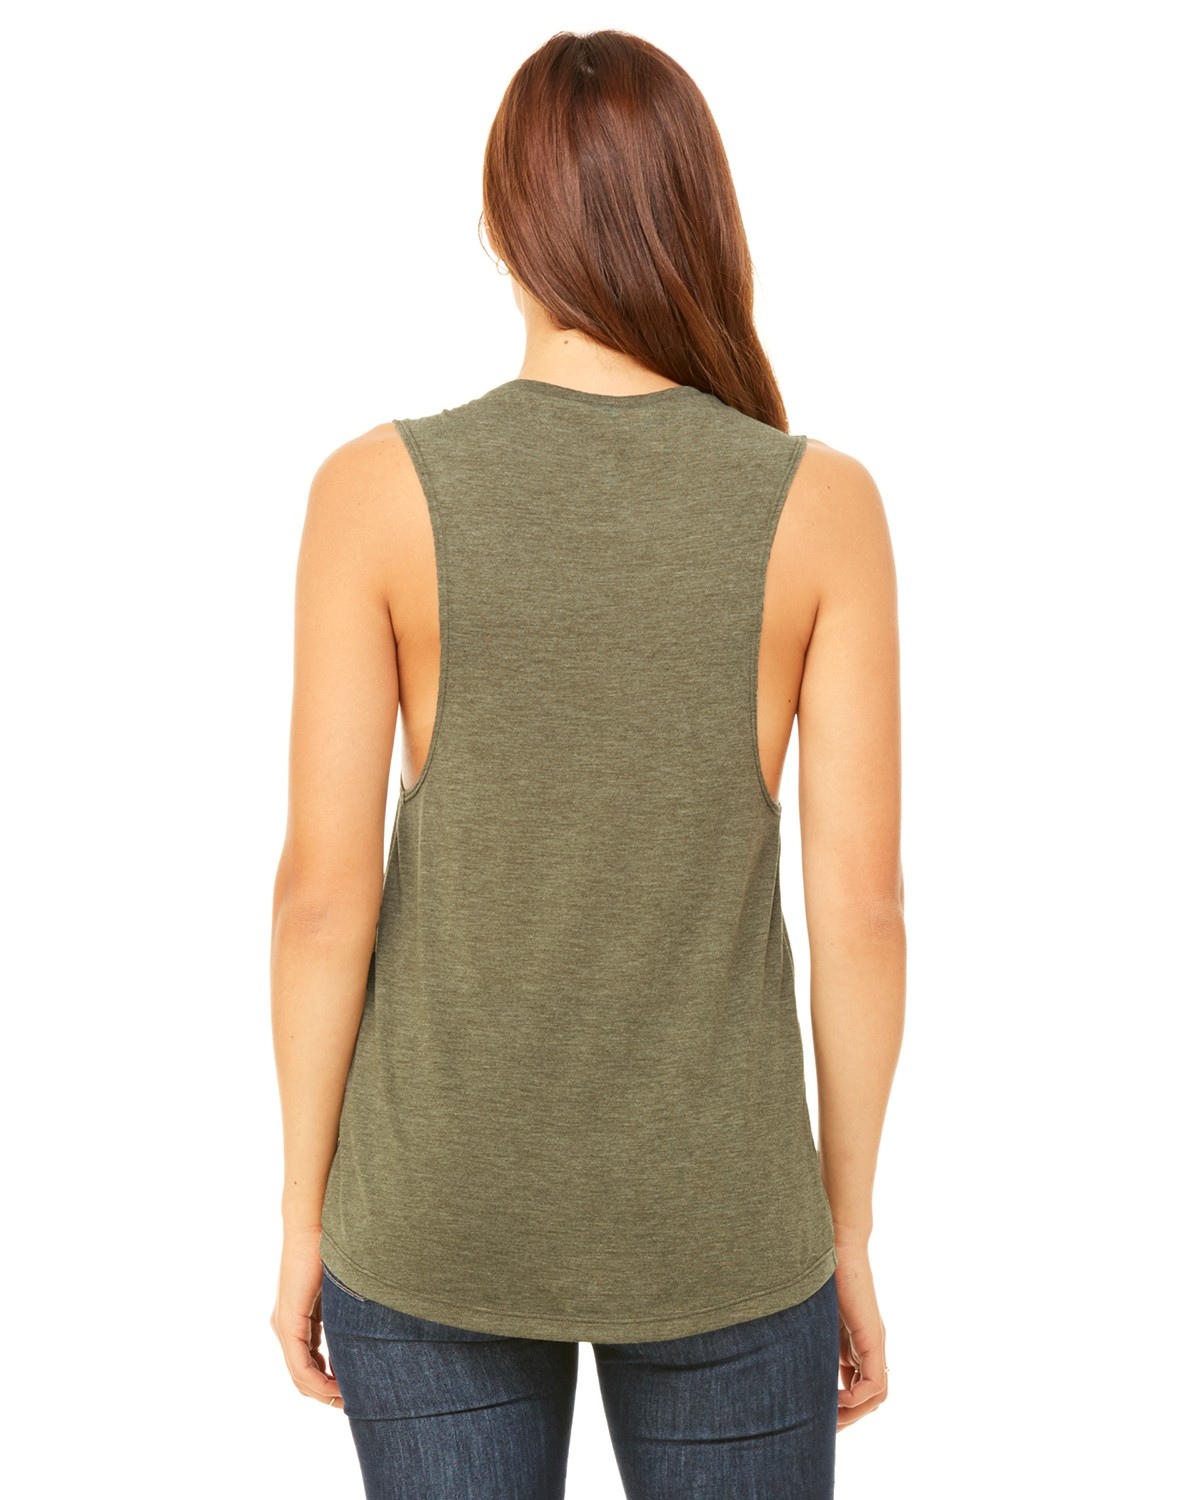 B8803 Bella + Canvas HEATHER OLIVE